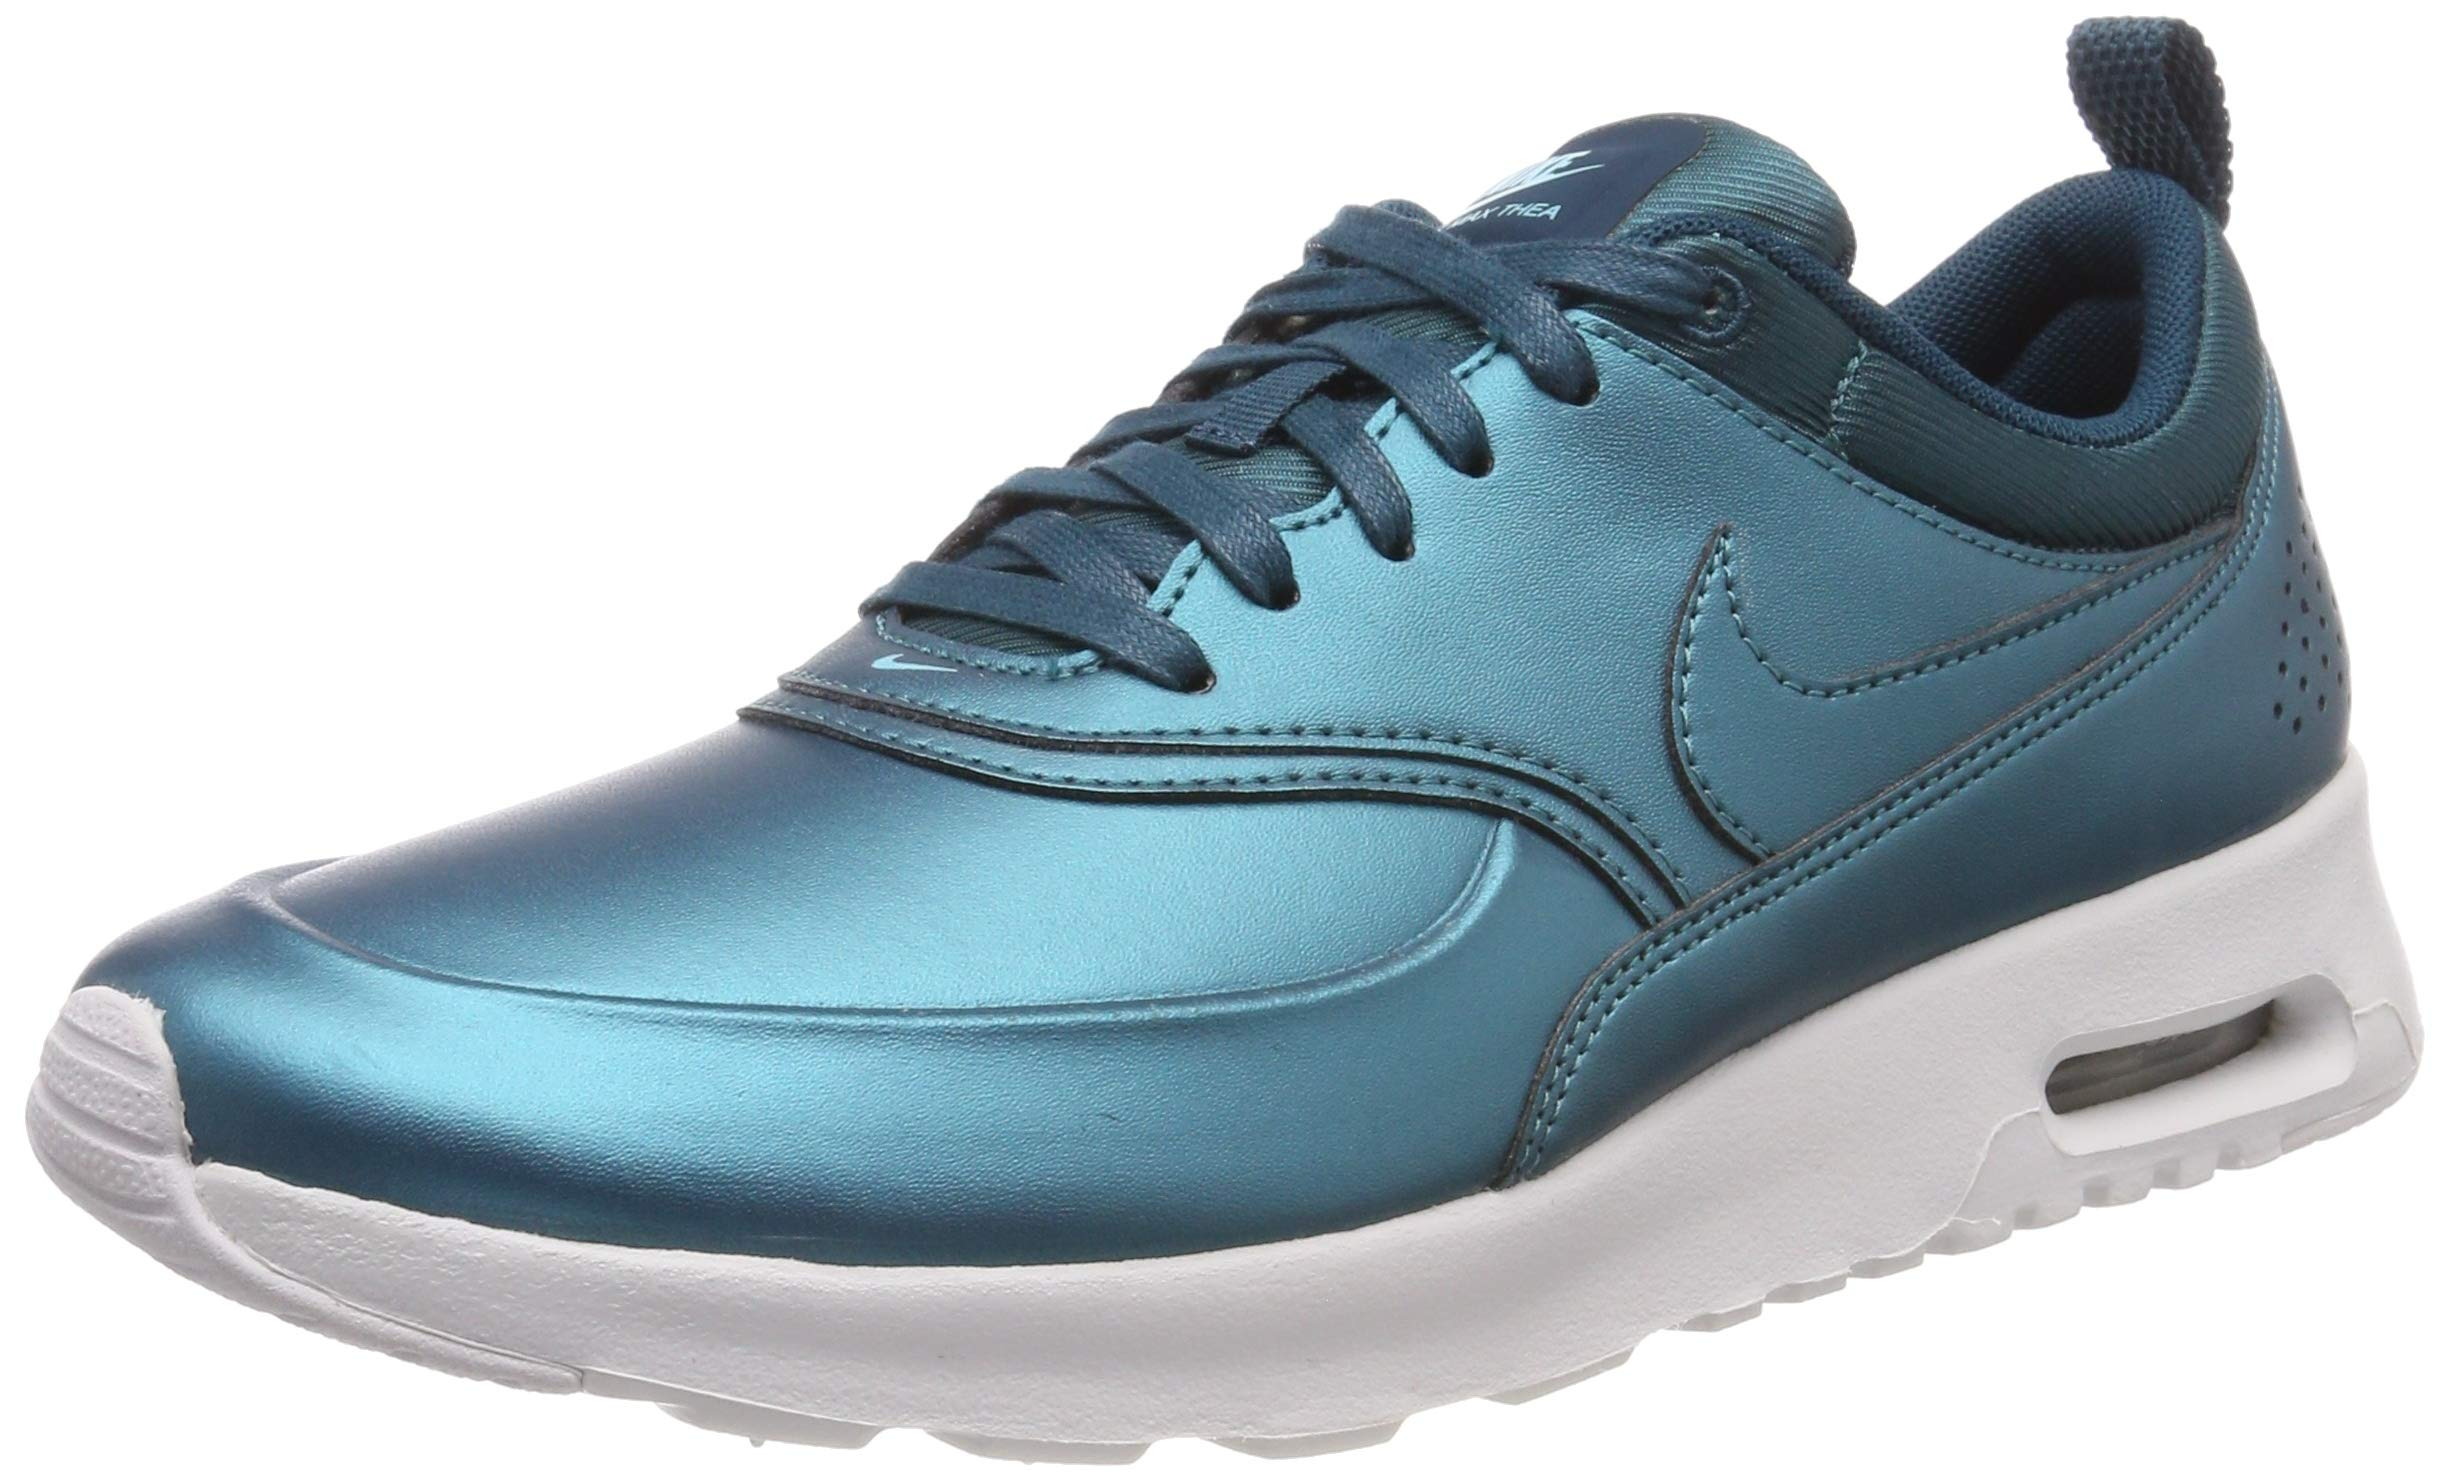 NIKE Women's W AIR Max THEA SE, Metallic Dark SeaMetallic Dark Sea, 9 M US